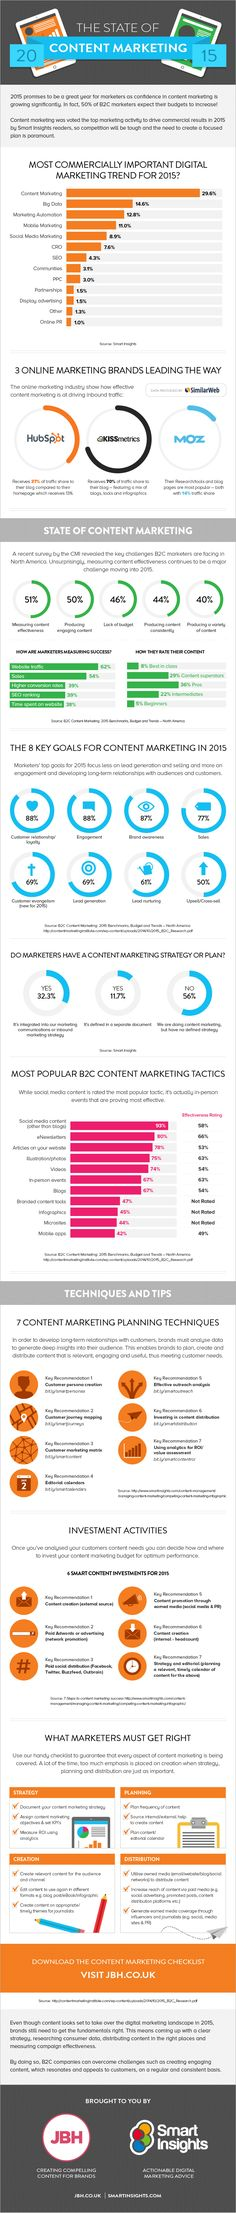 8 Ways Content Marketing Can Help Build Your Business